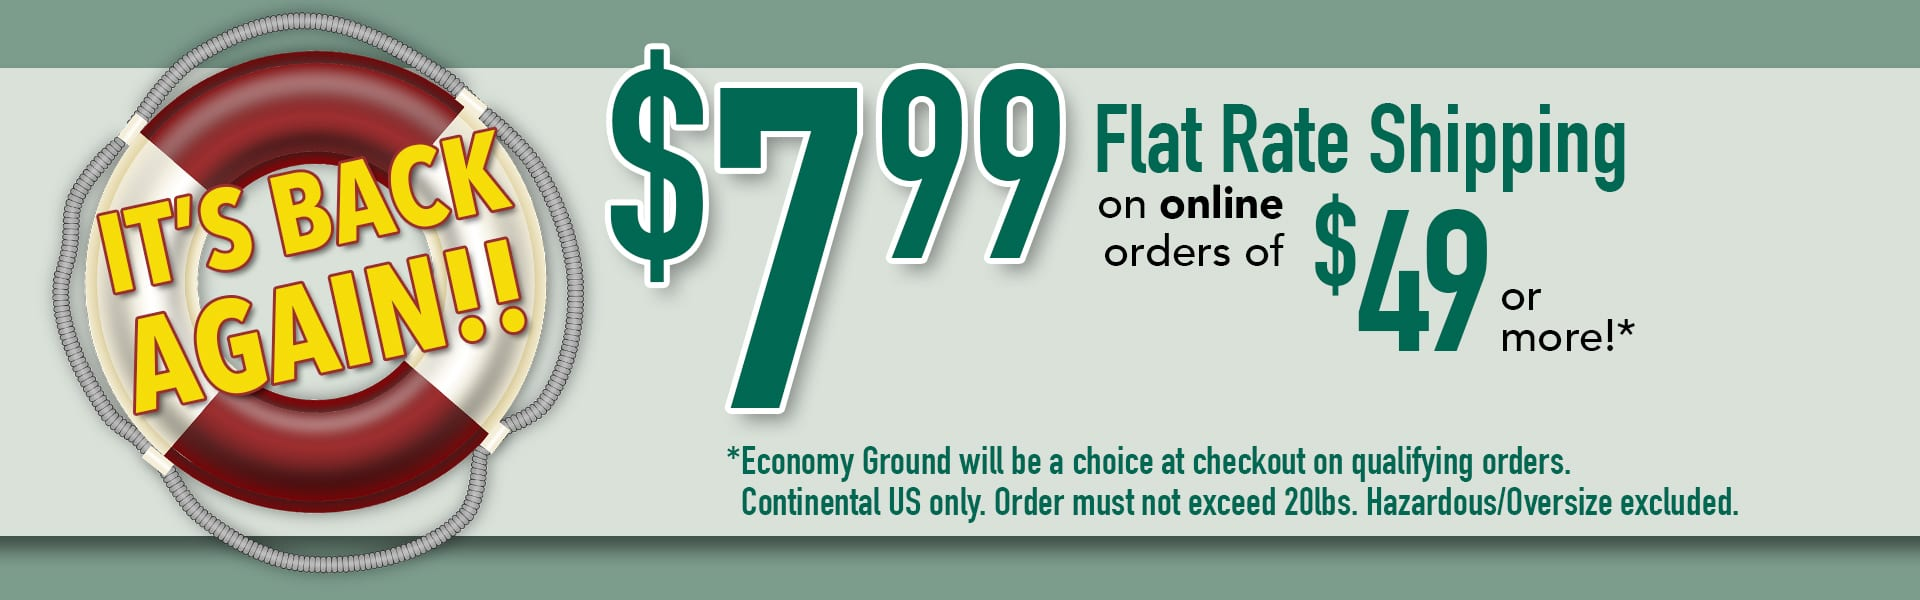 Flat Rate Shipping is Back!